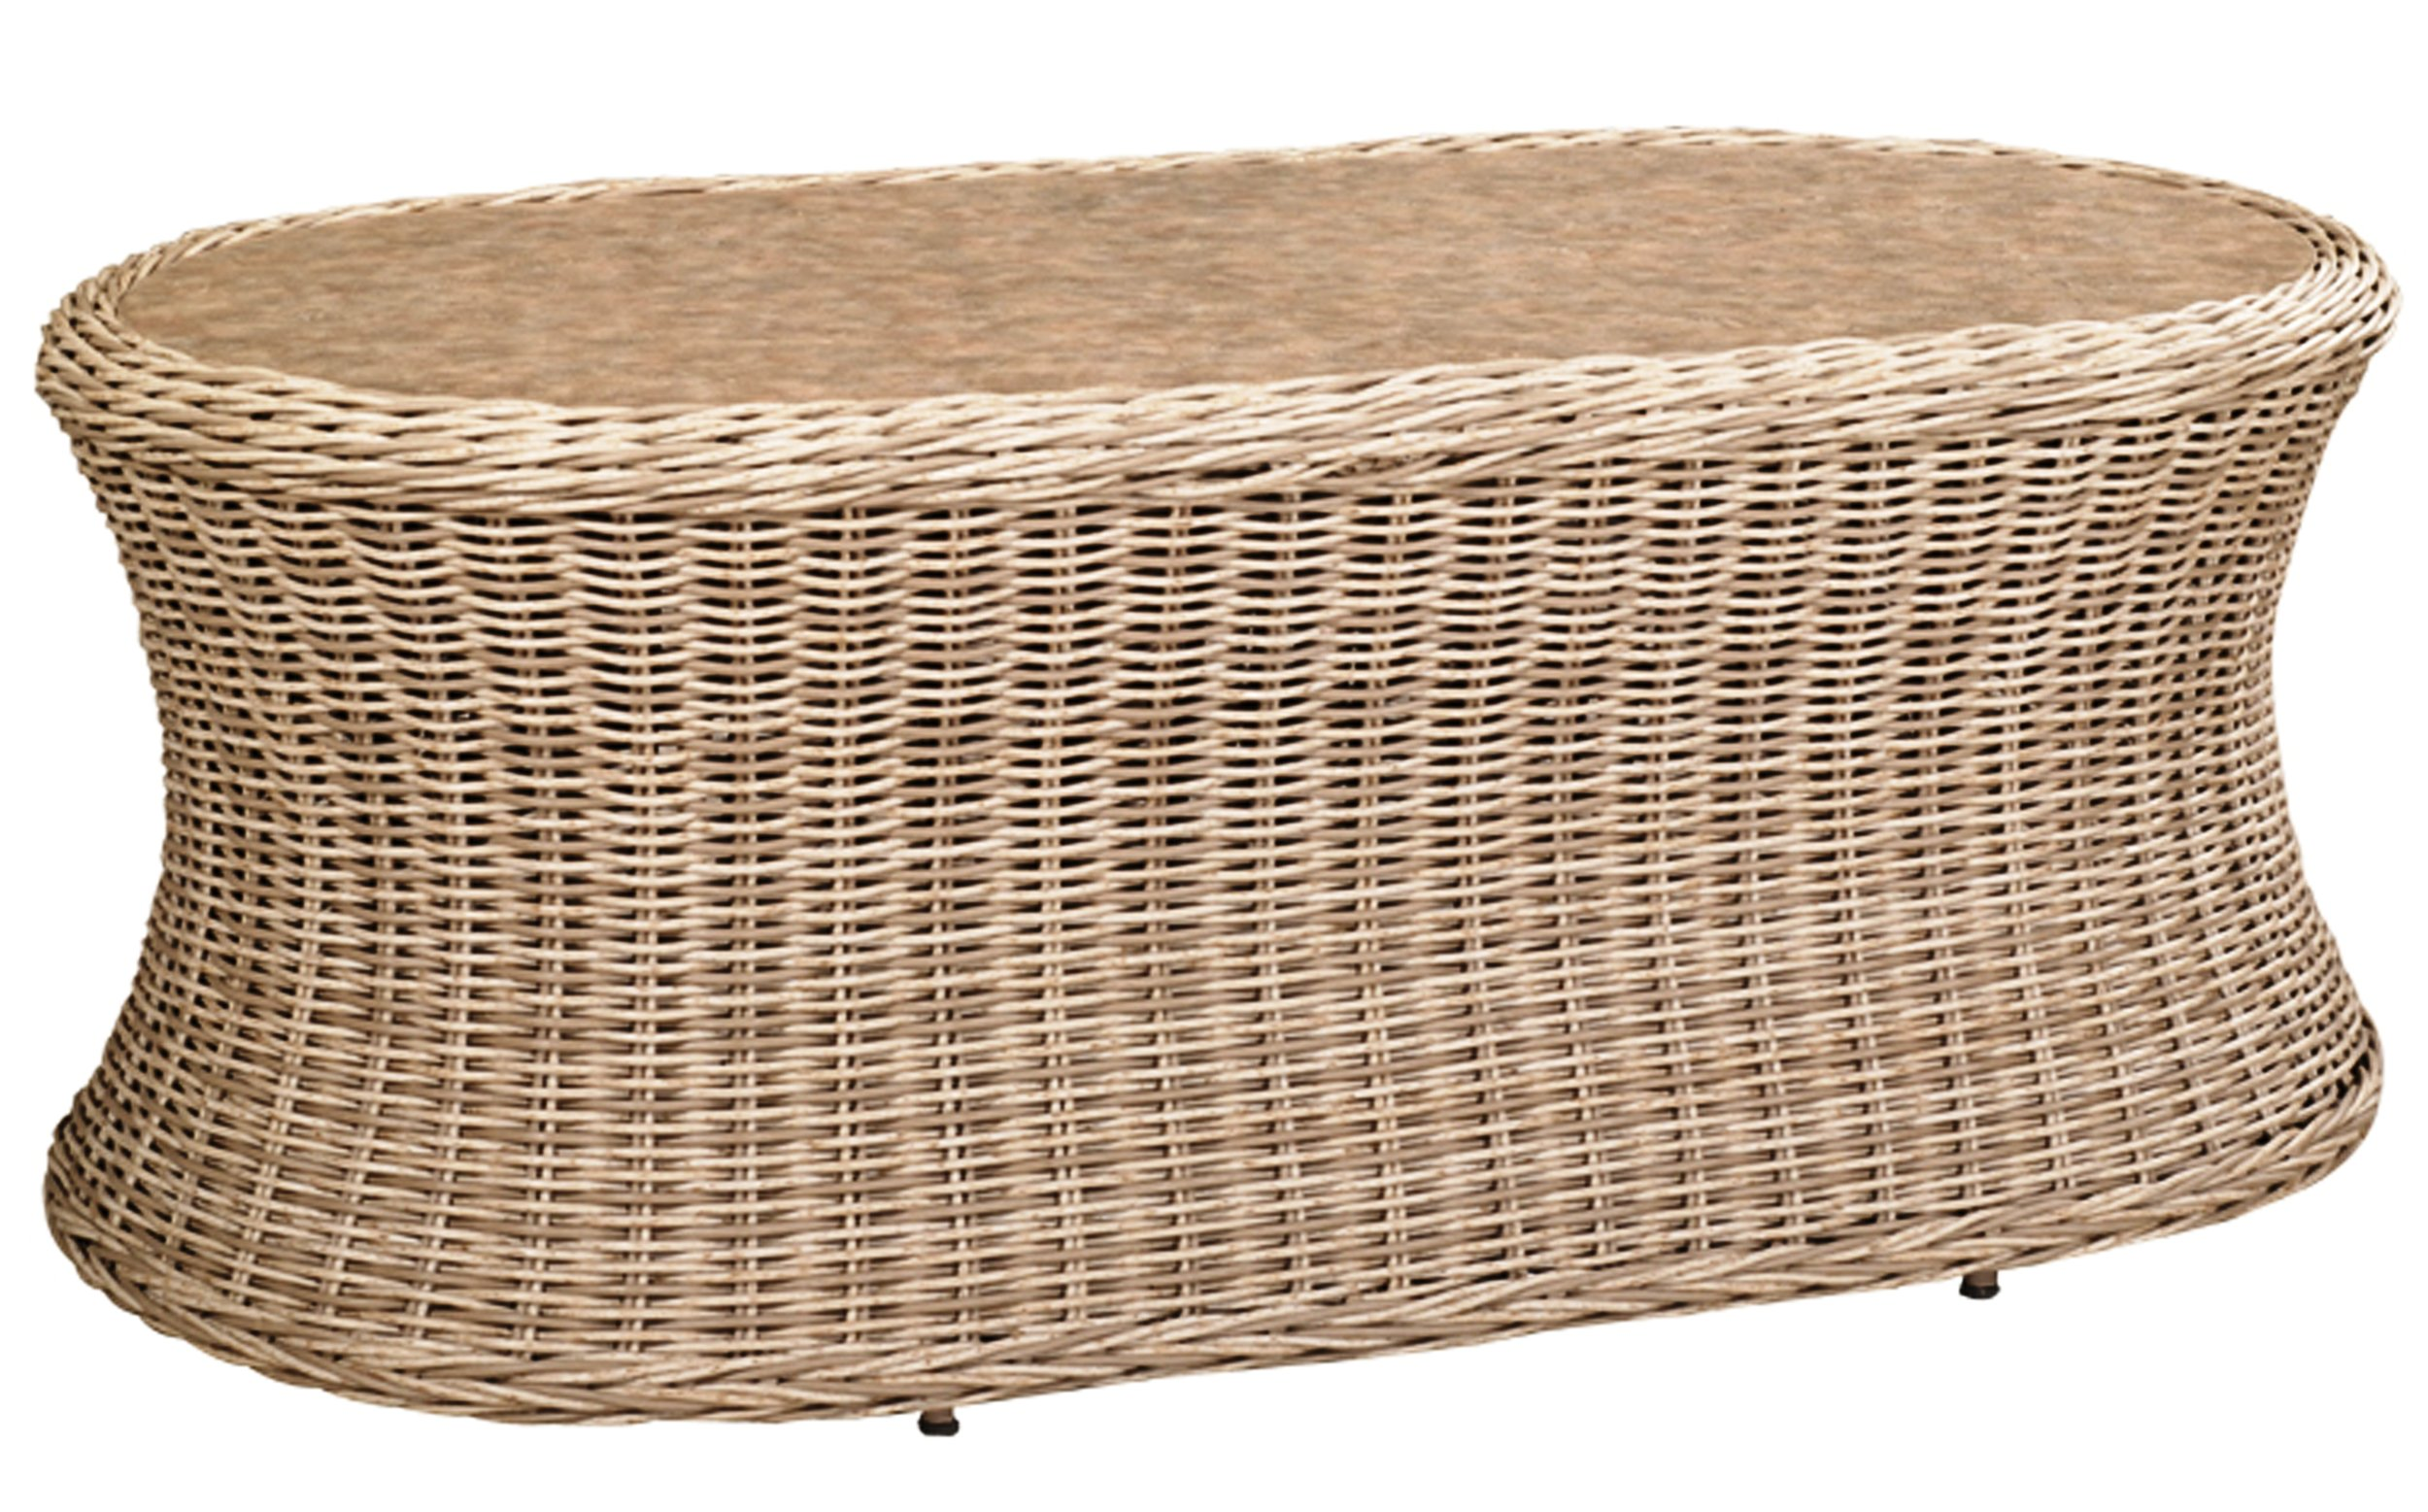 """971935 West Hampton Oval Coffee Table * Erie Top *    971935W West Hampton Oval Coffee Table * Woven top *   48"""" x 26"""" x 19"""""""